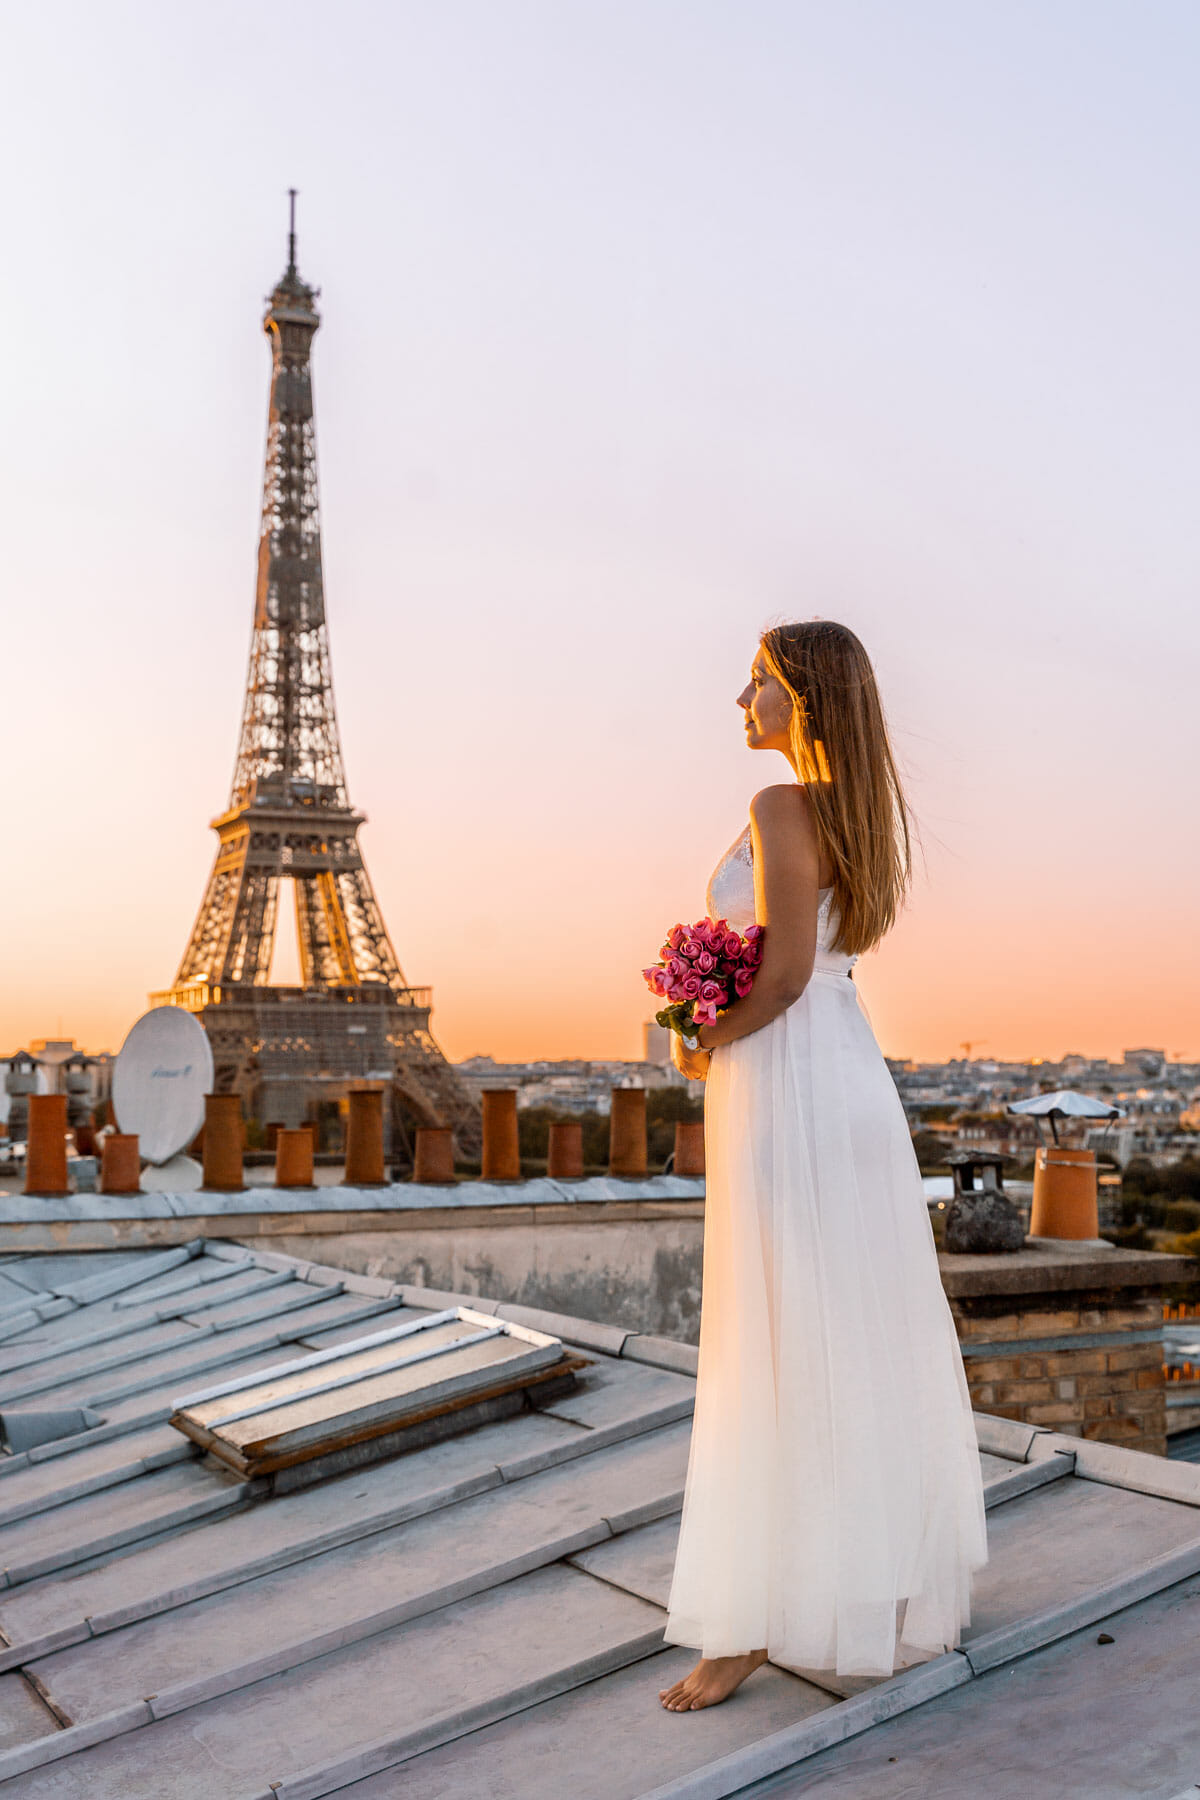 Girl in a white dress standing on a rooftop in Paris, looking at the Eiffel Tower